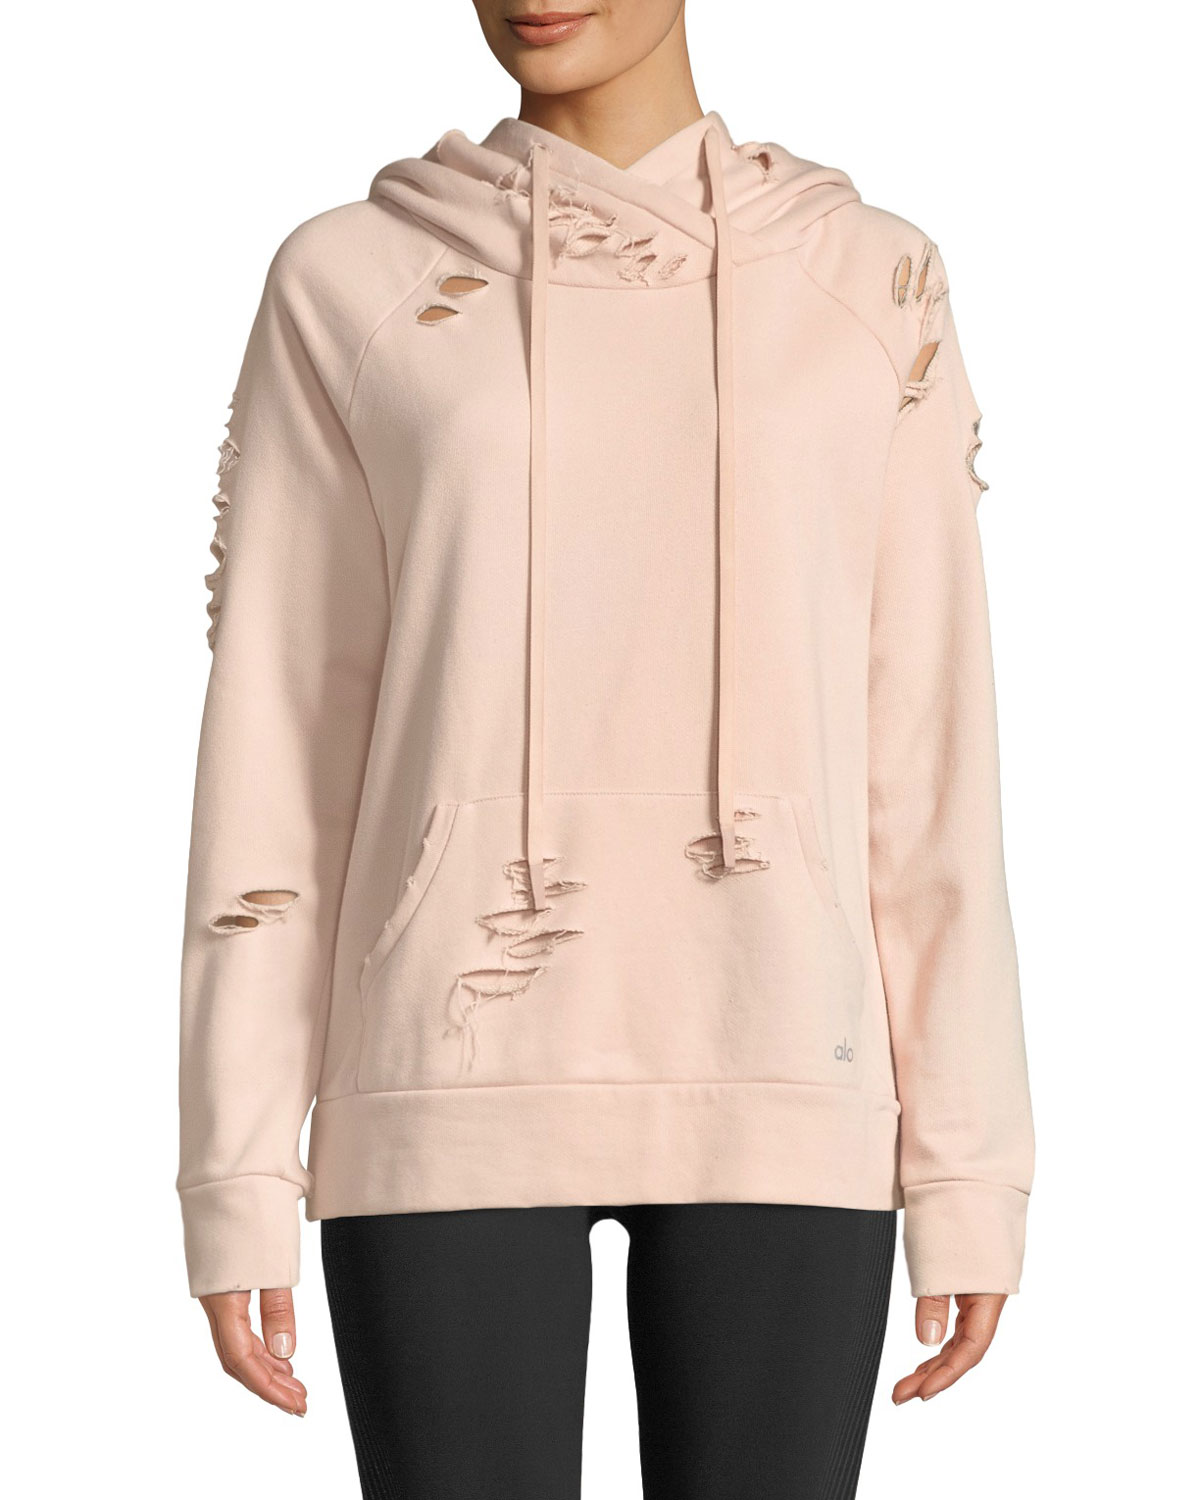 f4a9e0ac5ef23a Alo Yoga Ripped French Terry Pullover Hoodie Sweatshirt